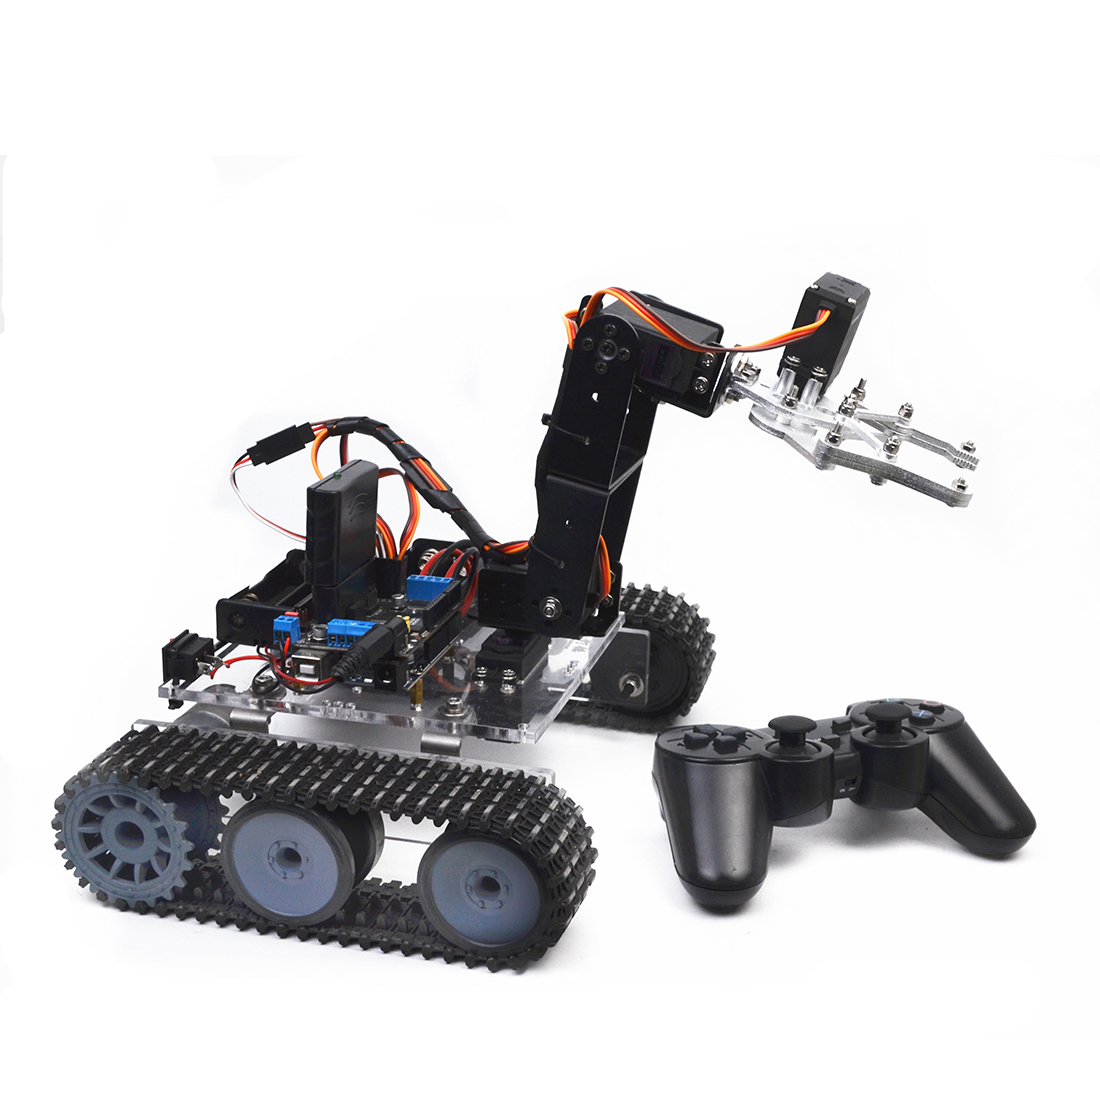 DIY Programmable Tank 4DOF Metal Mechanical Arm Robot Kit (Without Battery) For Child Kids Developmental Early Educational Toys